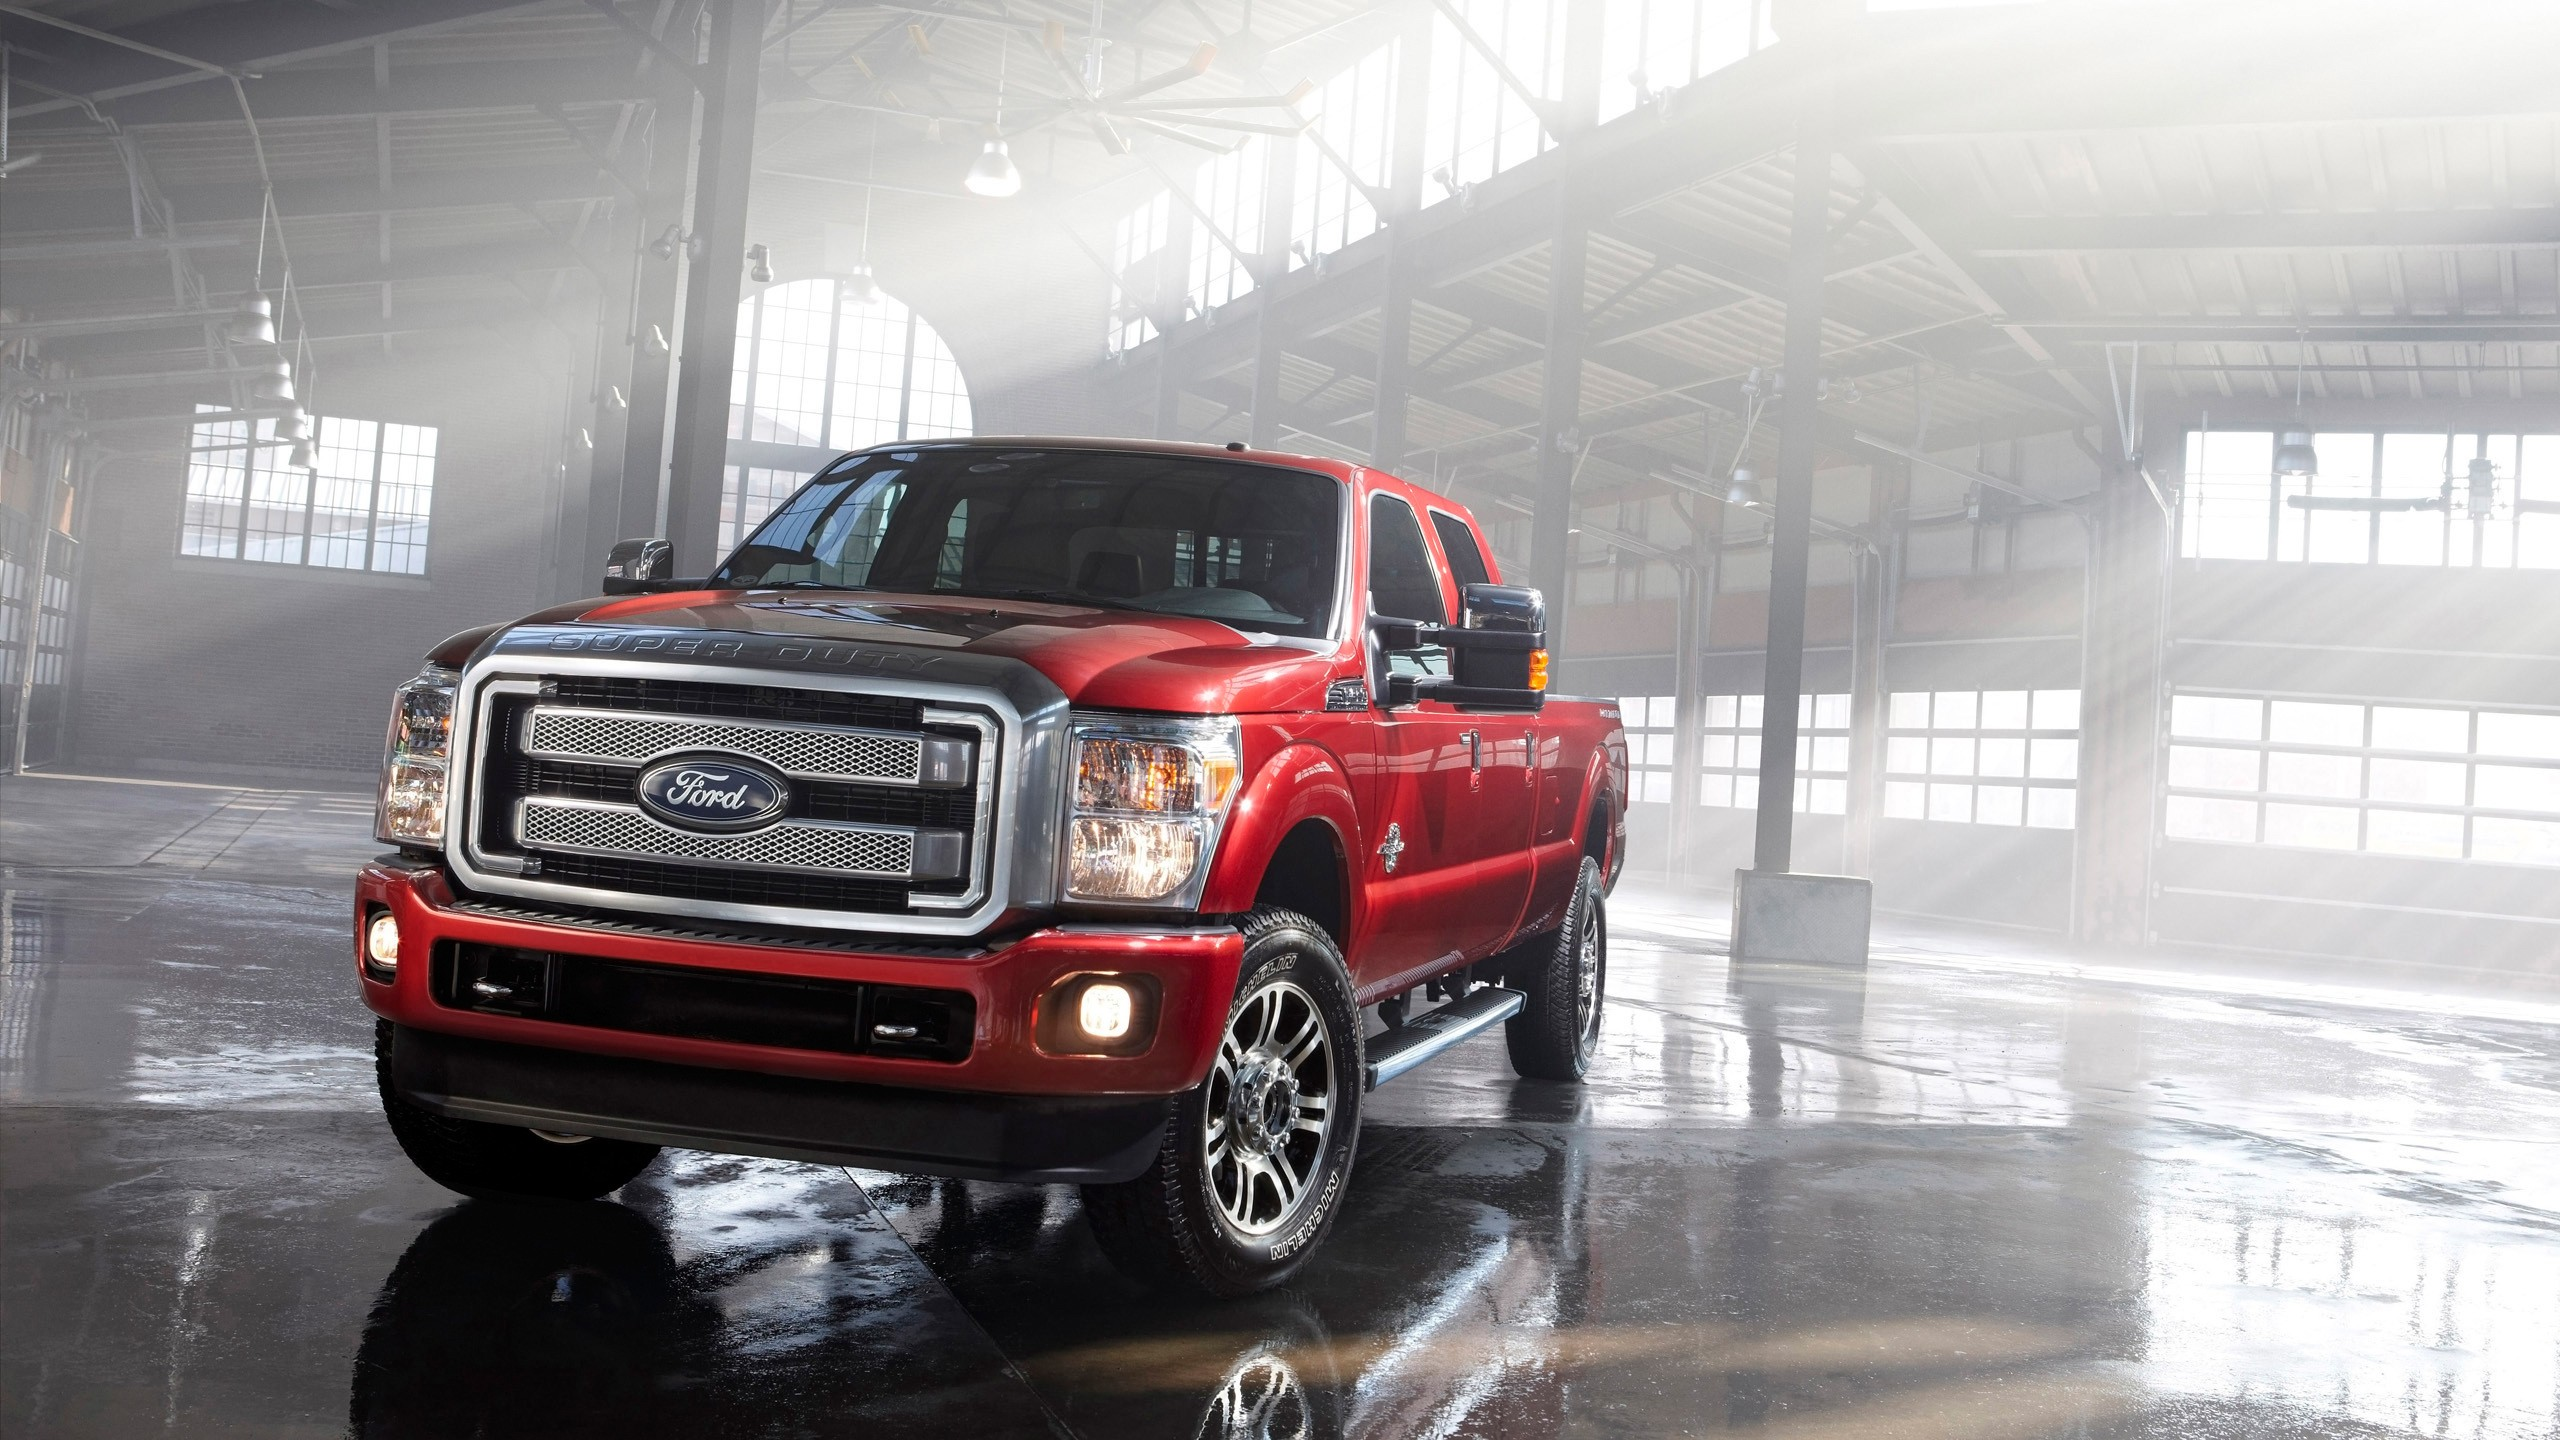 2014 Ford F Series Super Duty Wallpaper